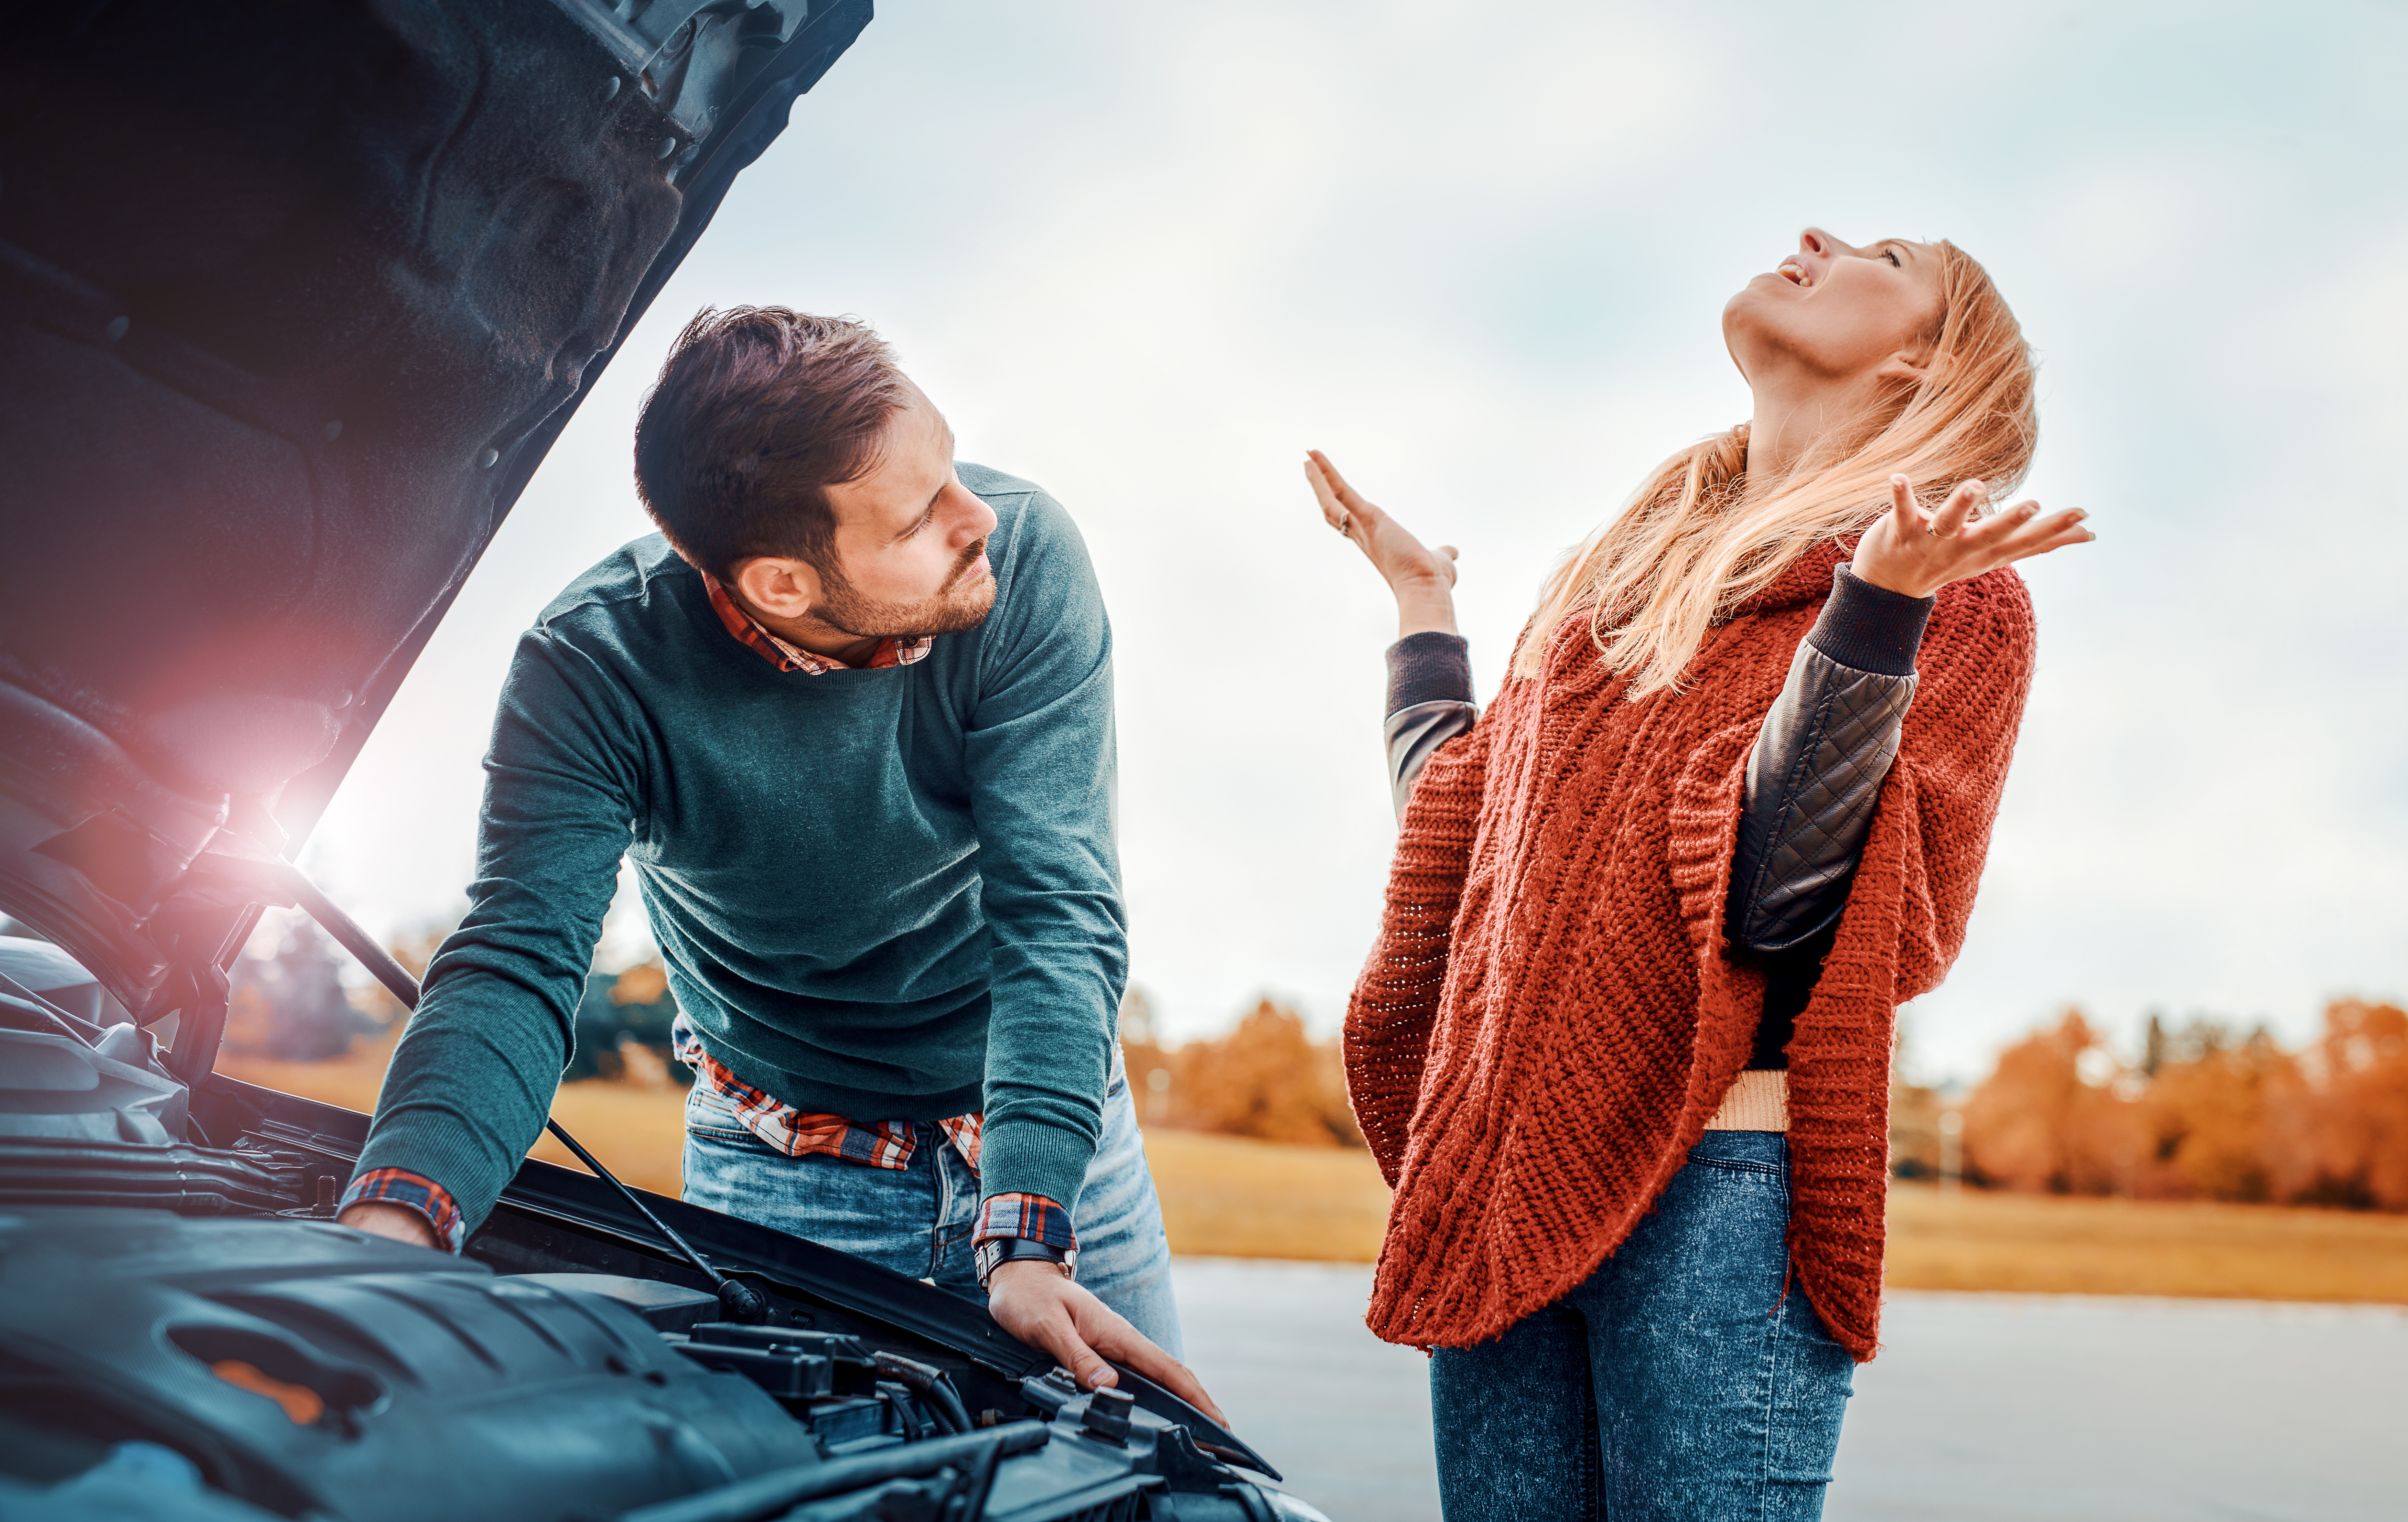 Man and Woman with Broken Down Car on Highway